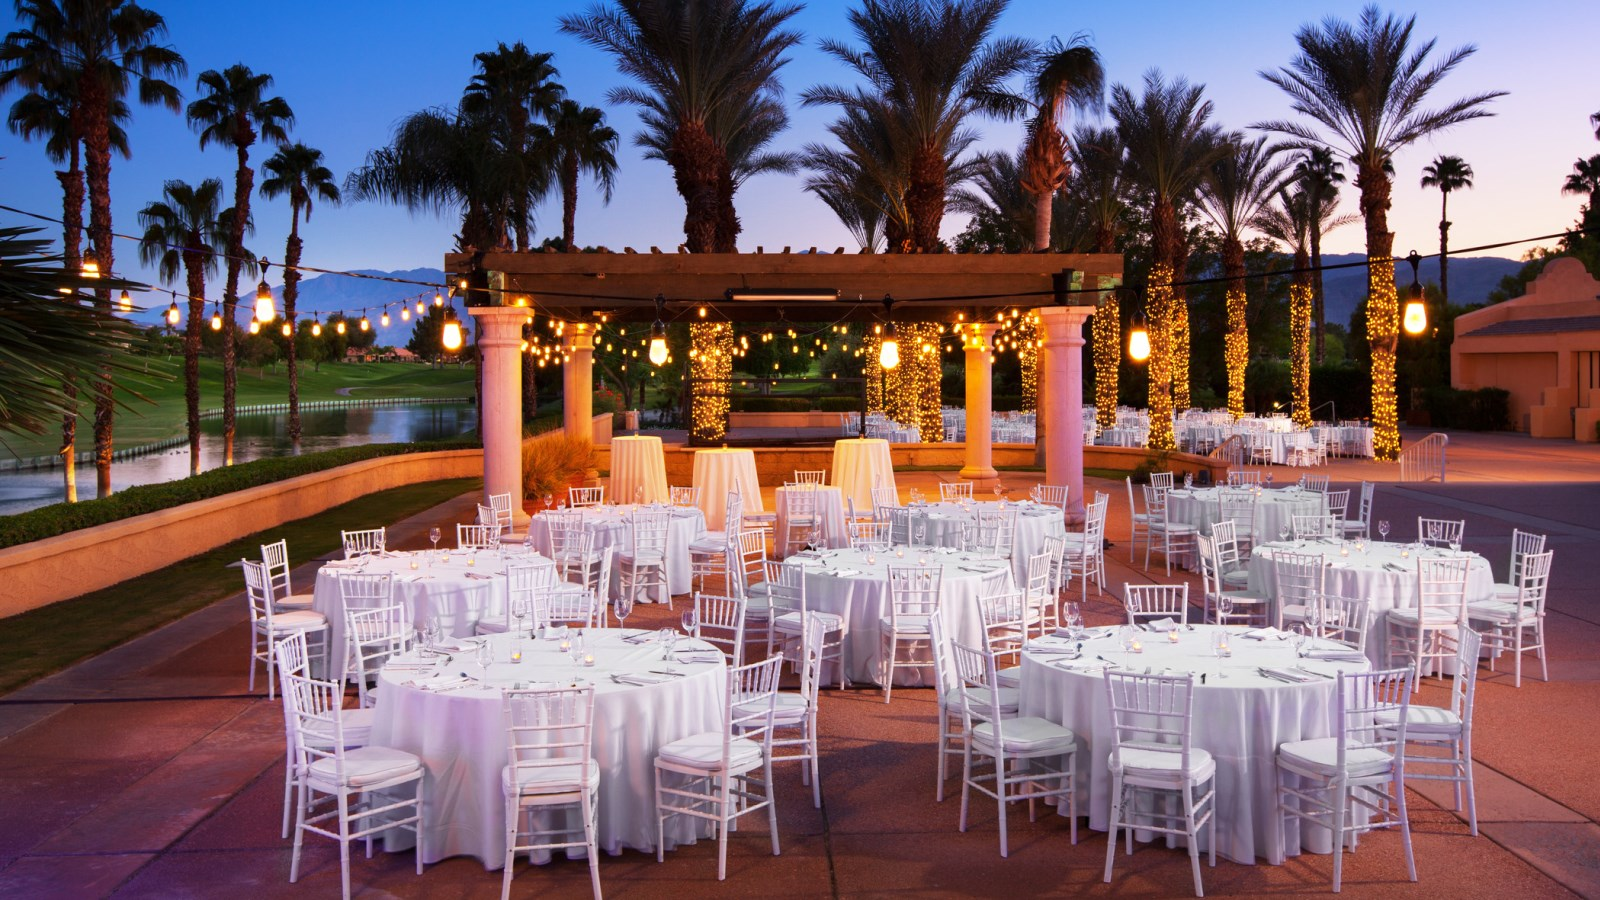 Palm springs wedding venues the westin mission hills golf resort the westin mission hills golf resort spa weddings junglespirit